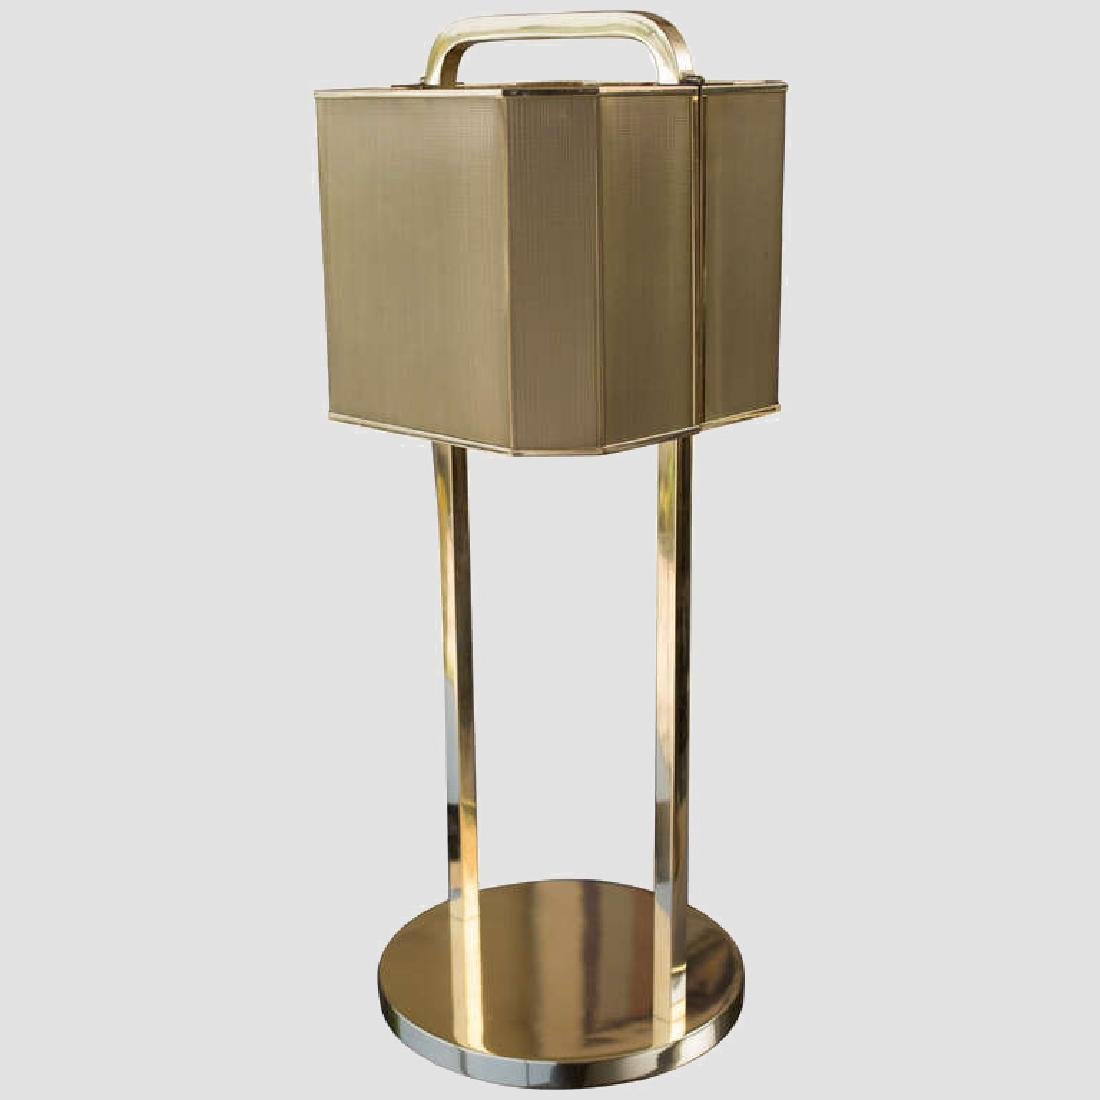 1970's Brass Table Lamp